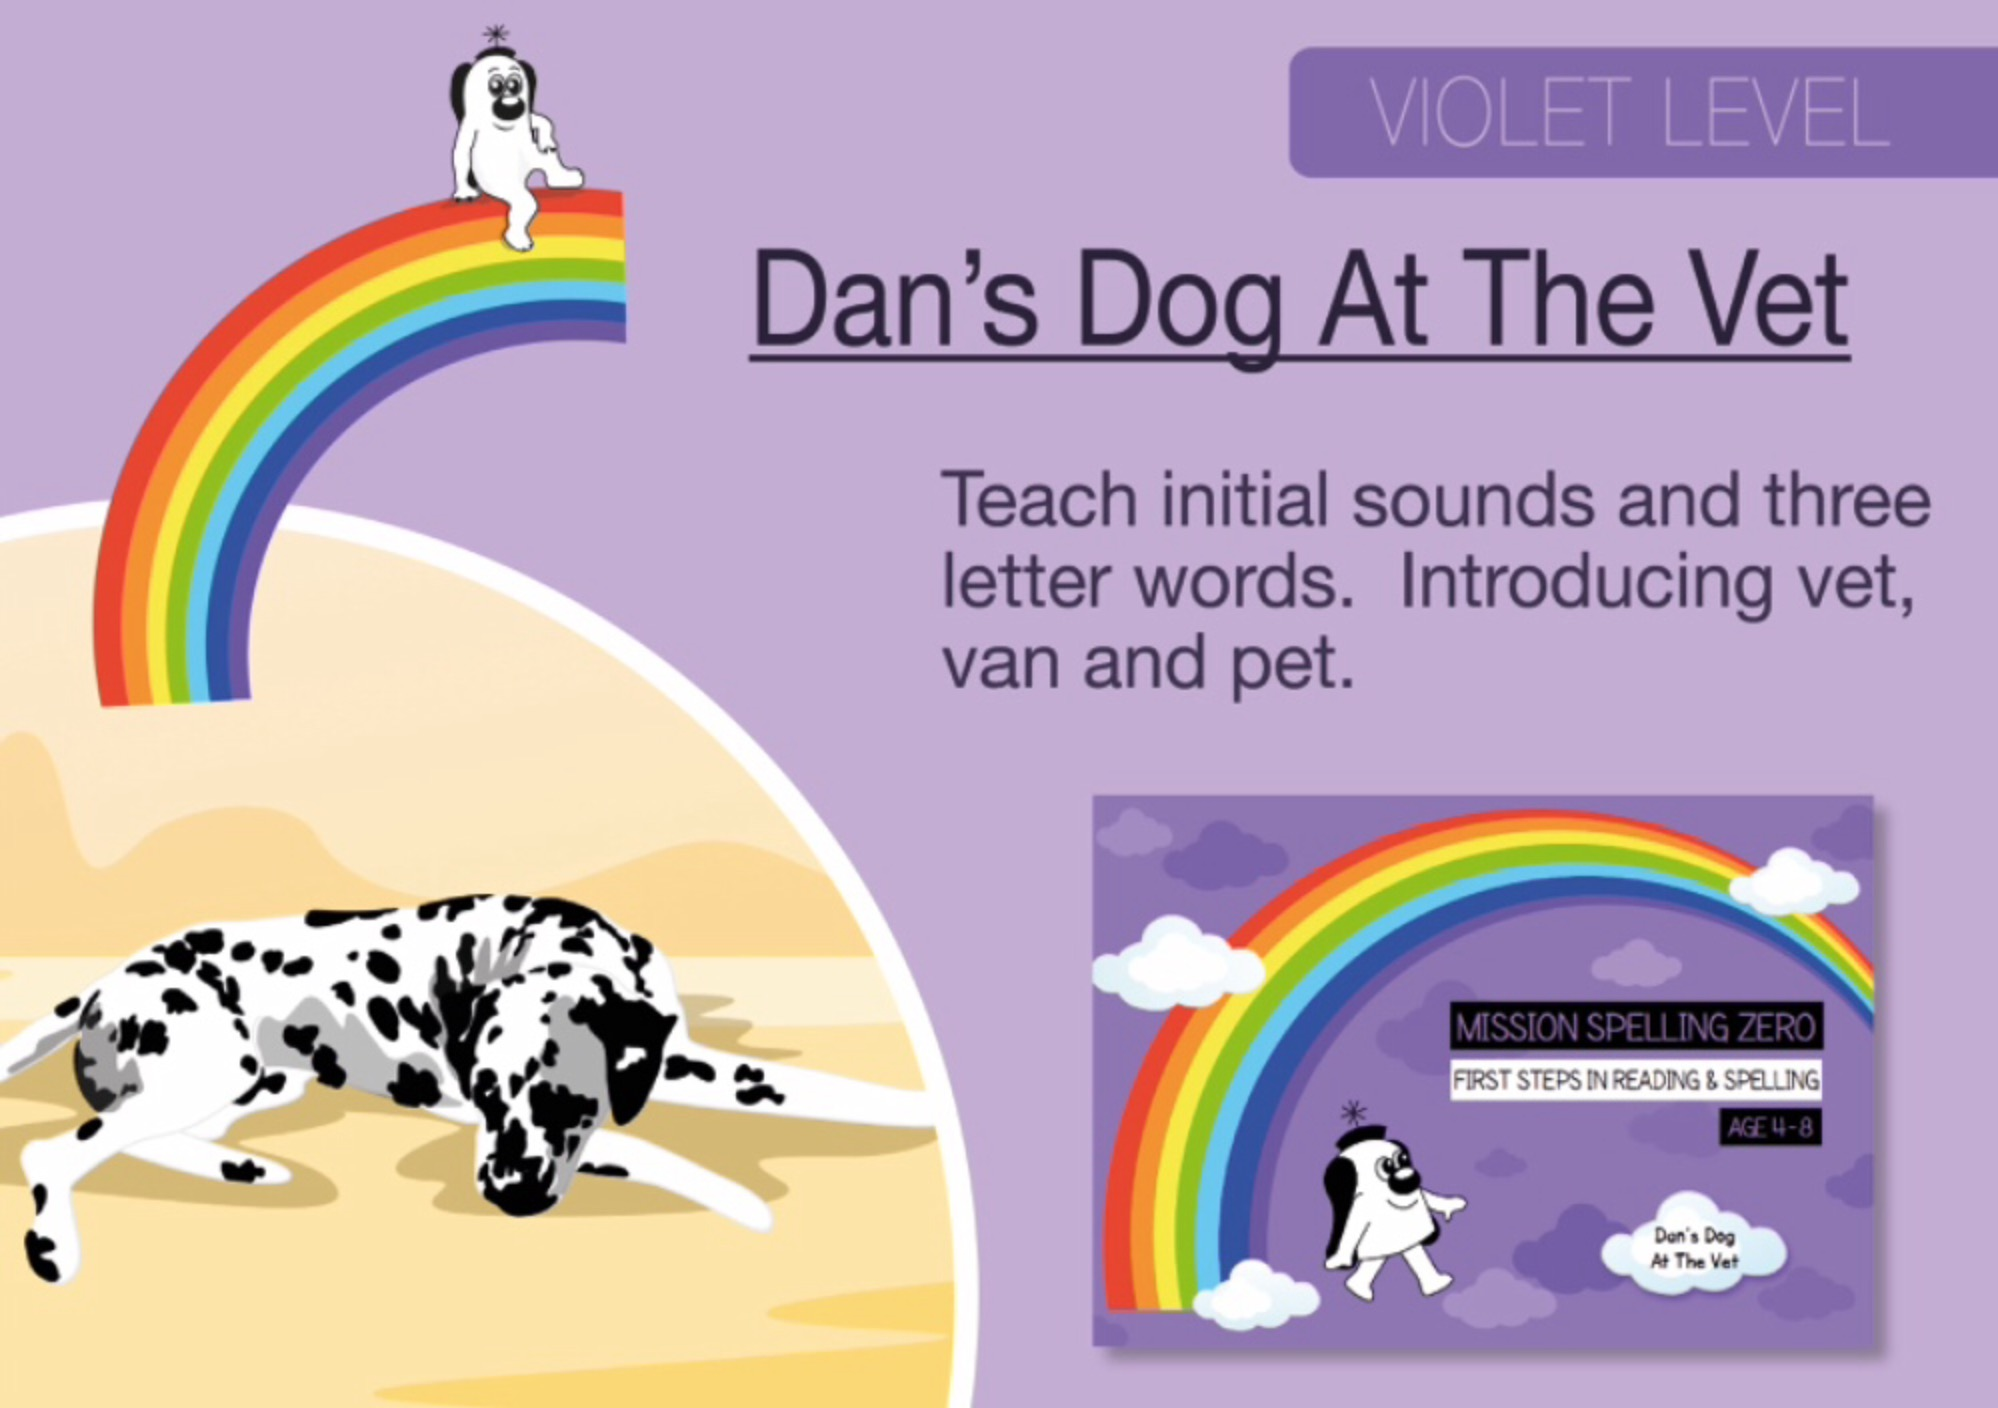 Initial Sounds & Three Letter Words (Dan's Dog At The Vet)